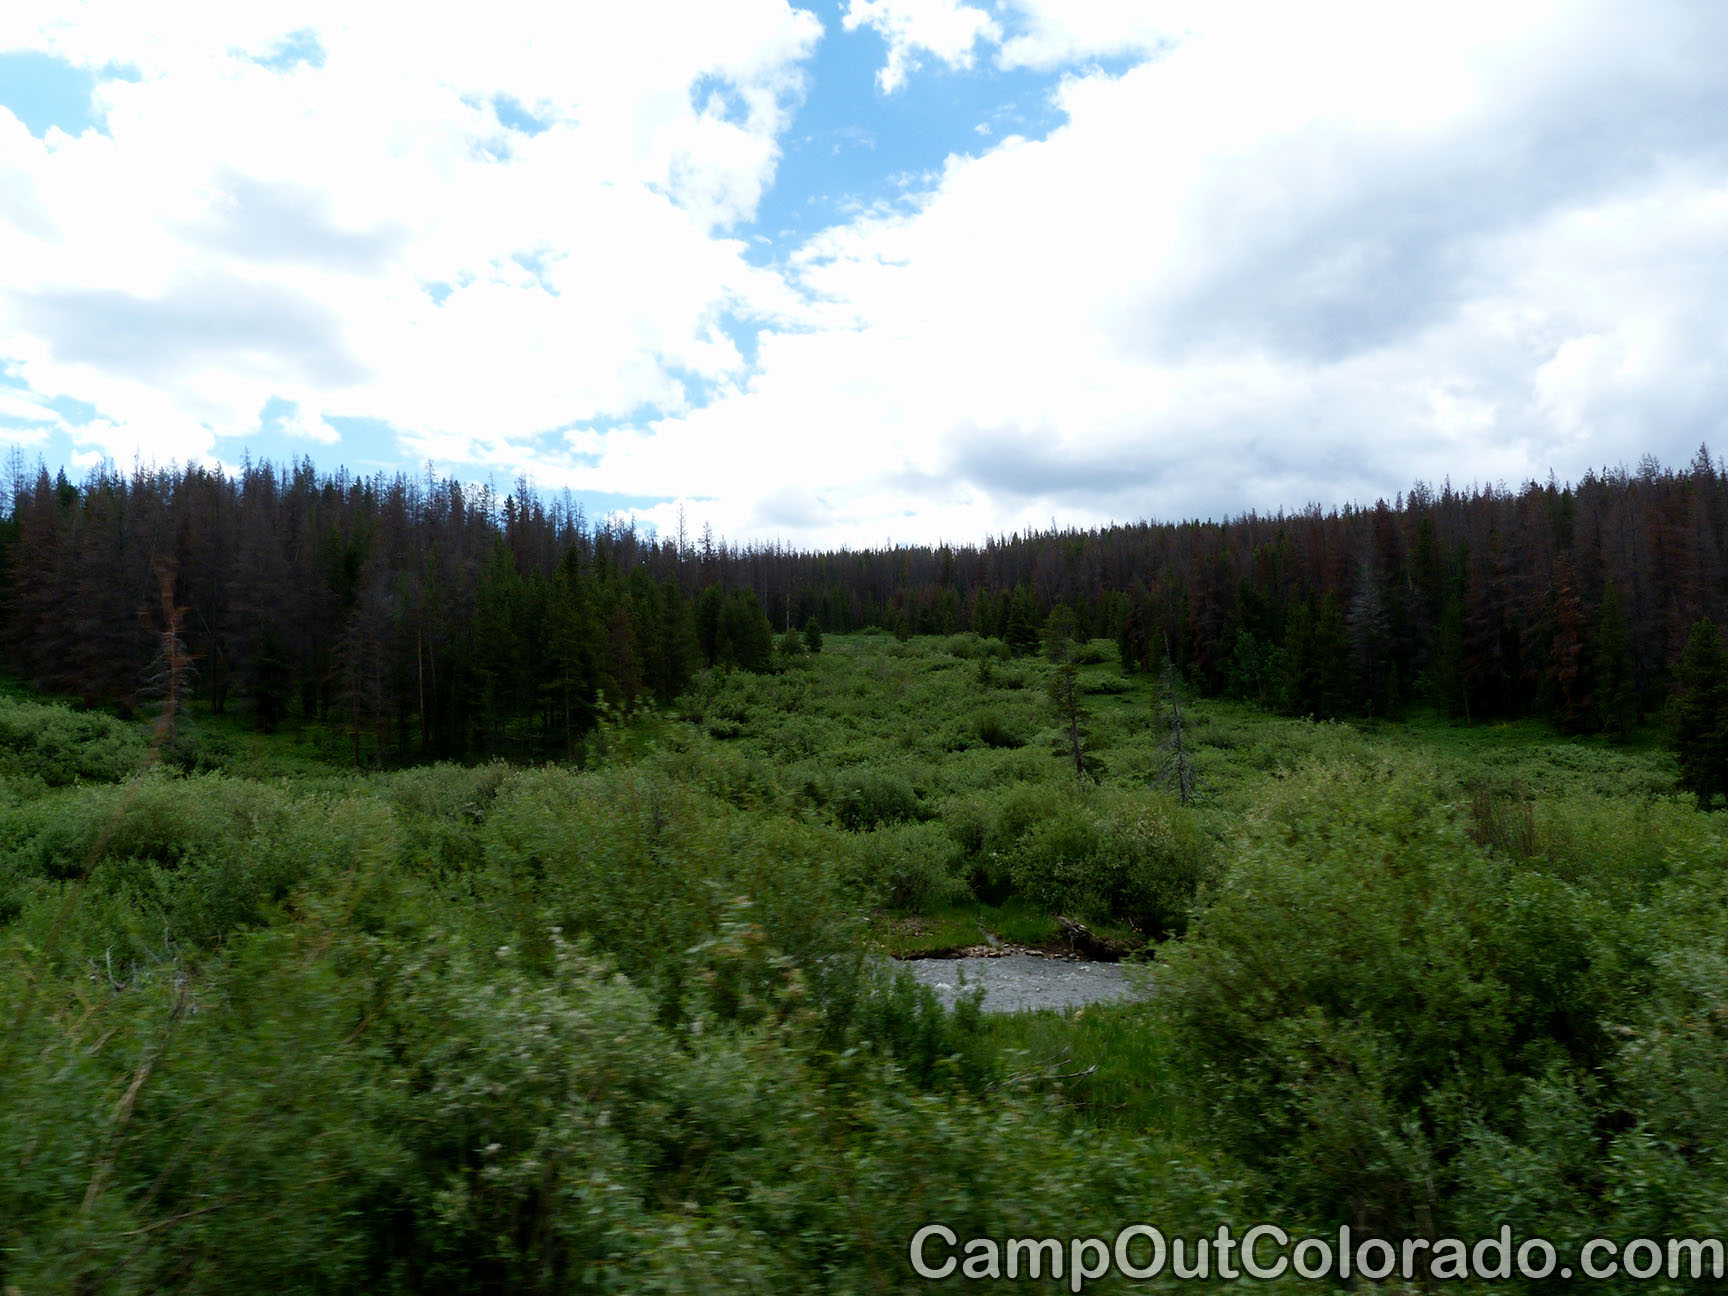 Campoutcolorado-north-michigan-reservoir-campground-valley